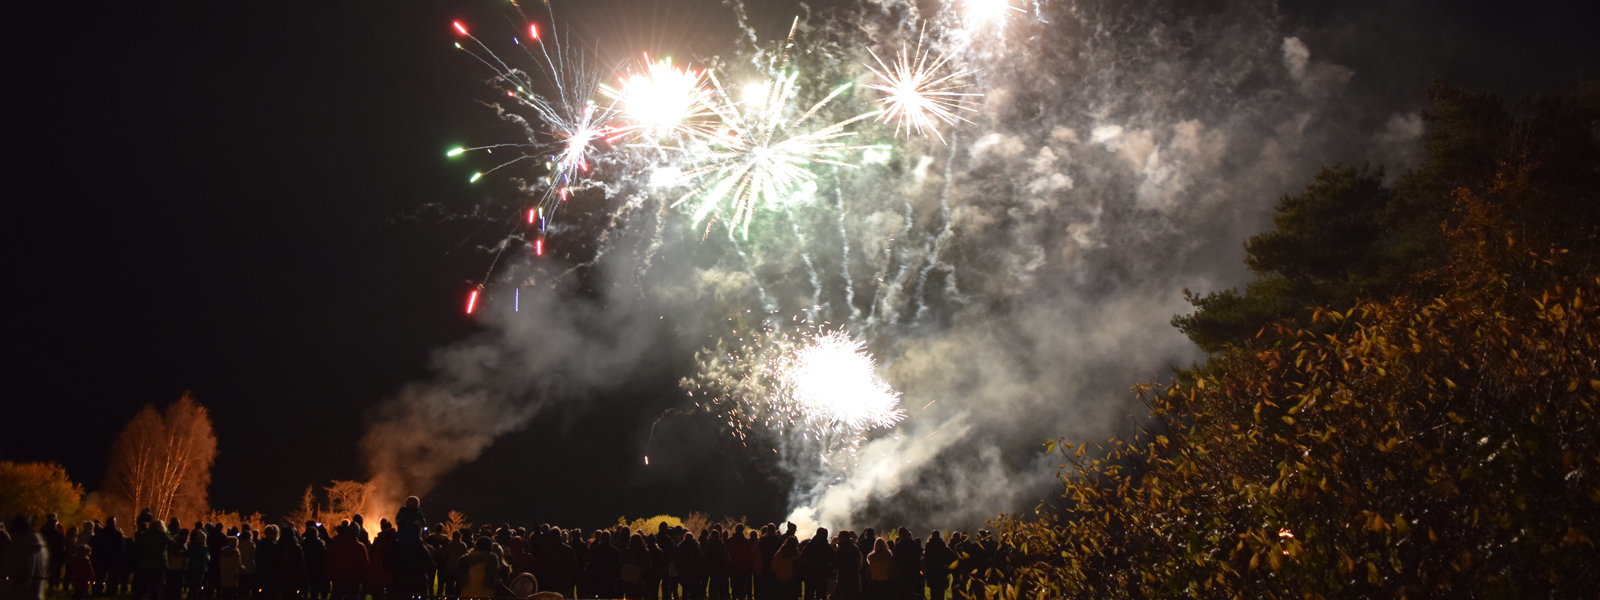 Ross Priory Members' Fireworks Night